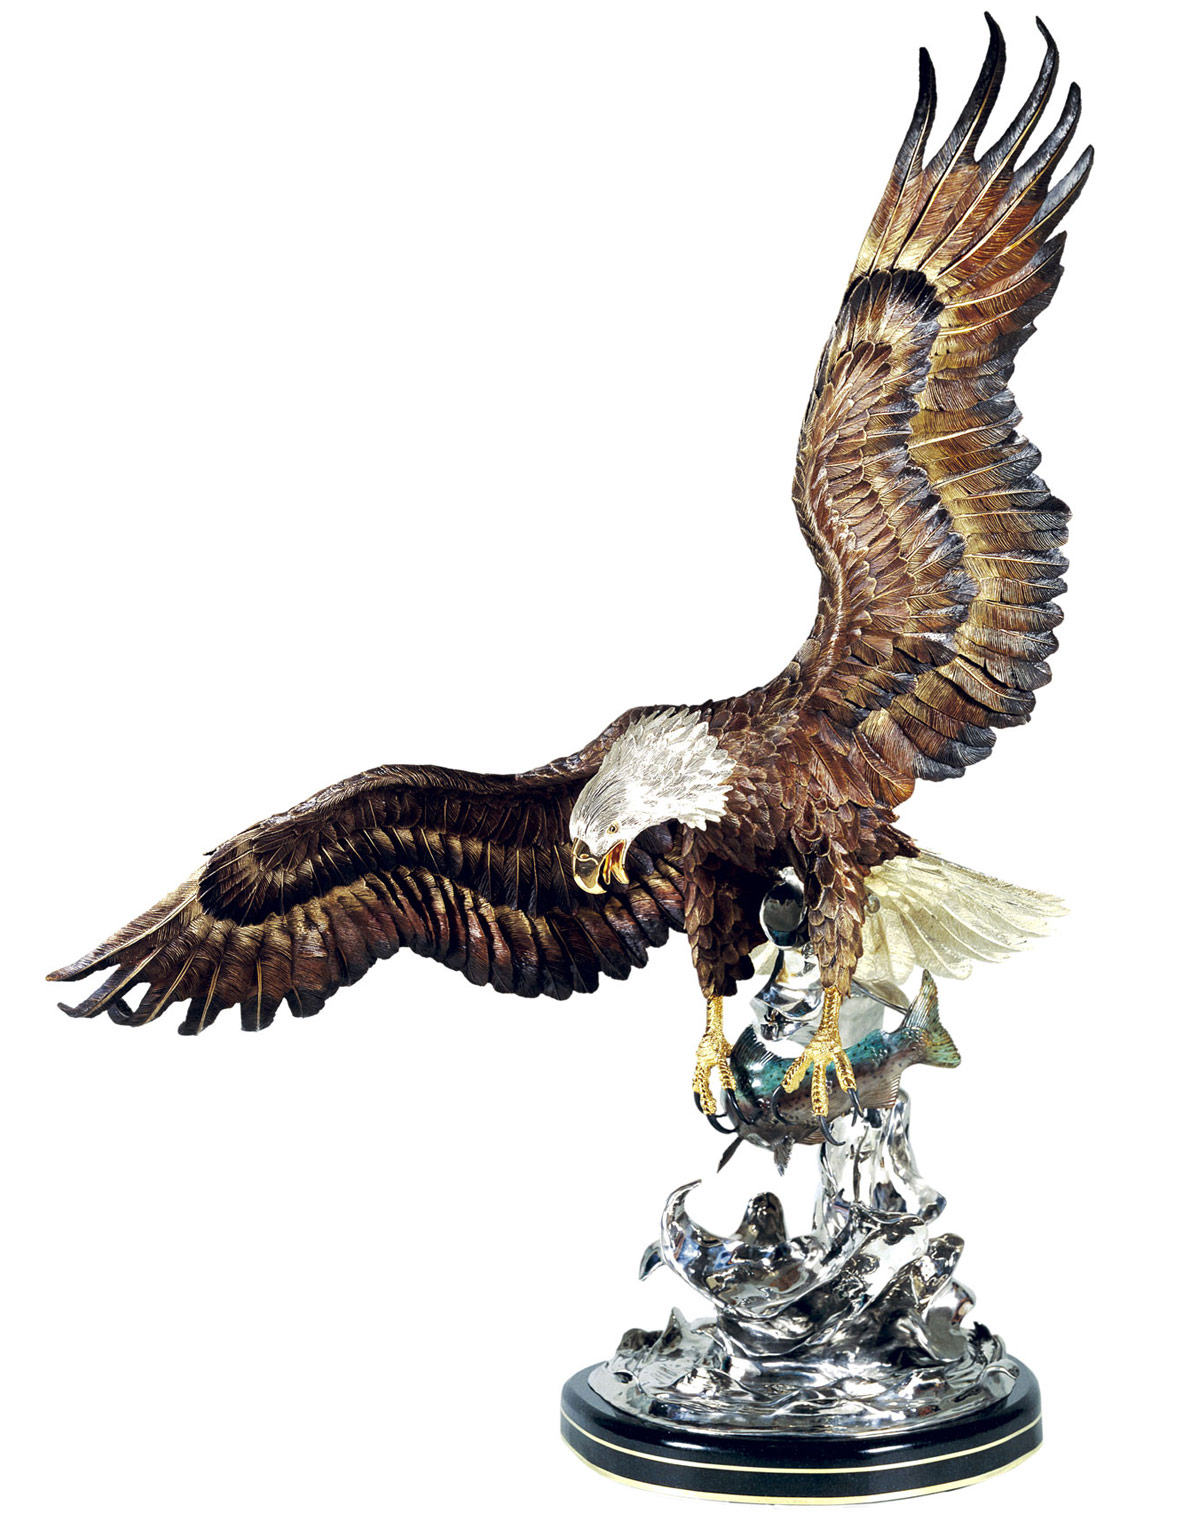 Bald Eagle Sculpture On The Wings of An Eagle